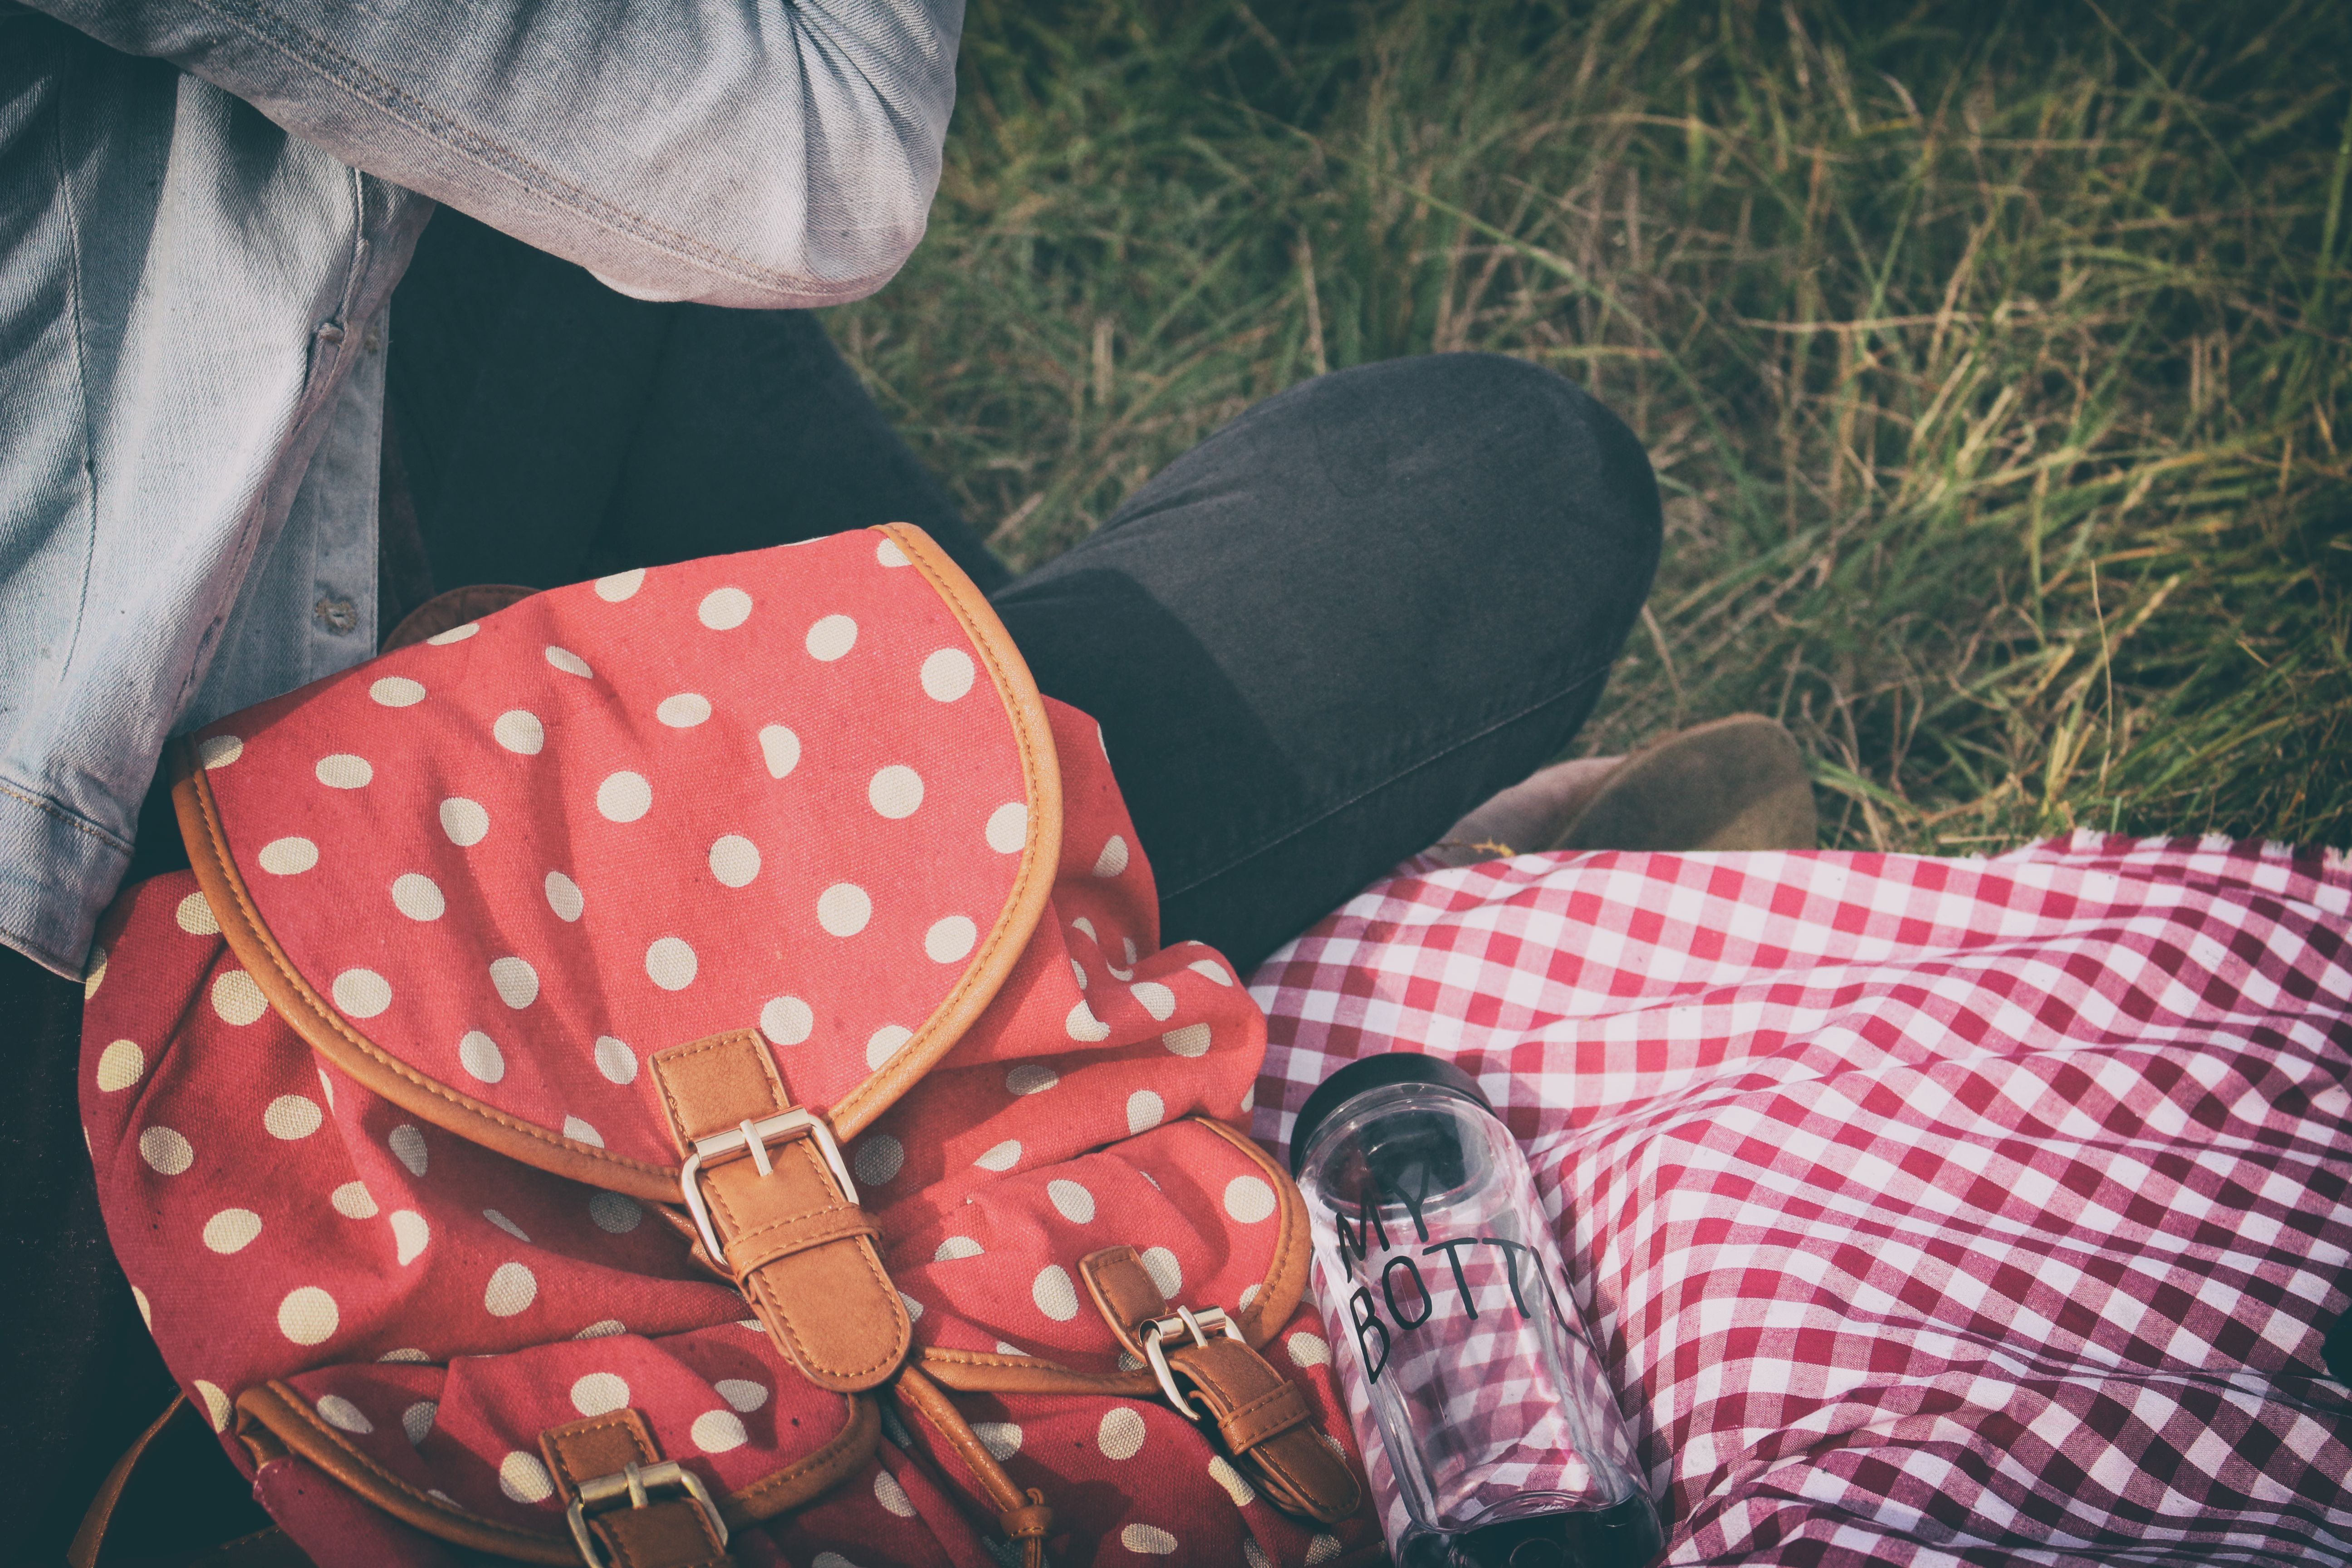 Woman's Red With Polka Dot Print Backpack, Jeans, Wear, Water, Travel, HQ Photo